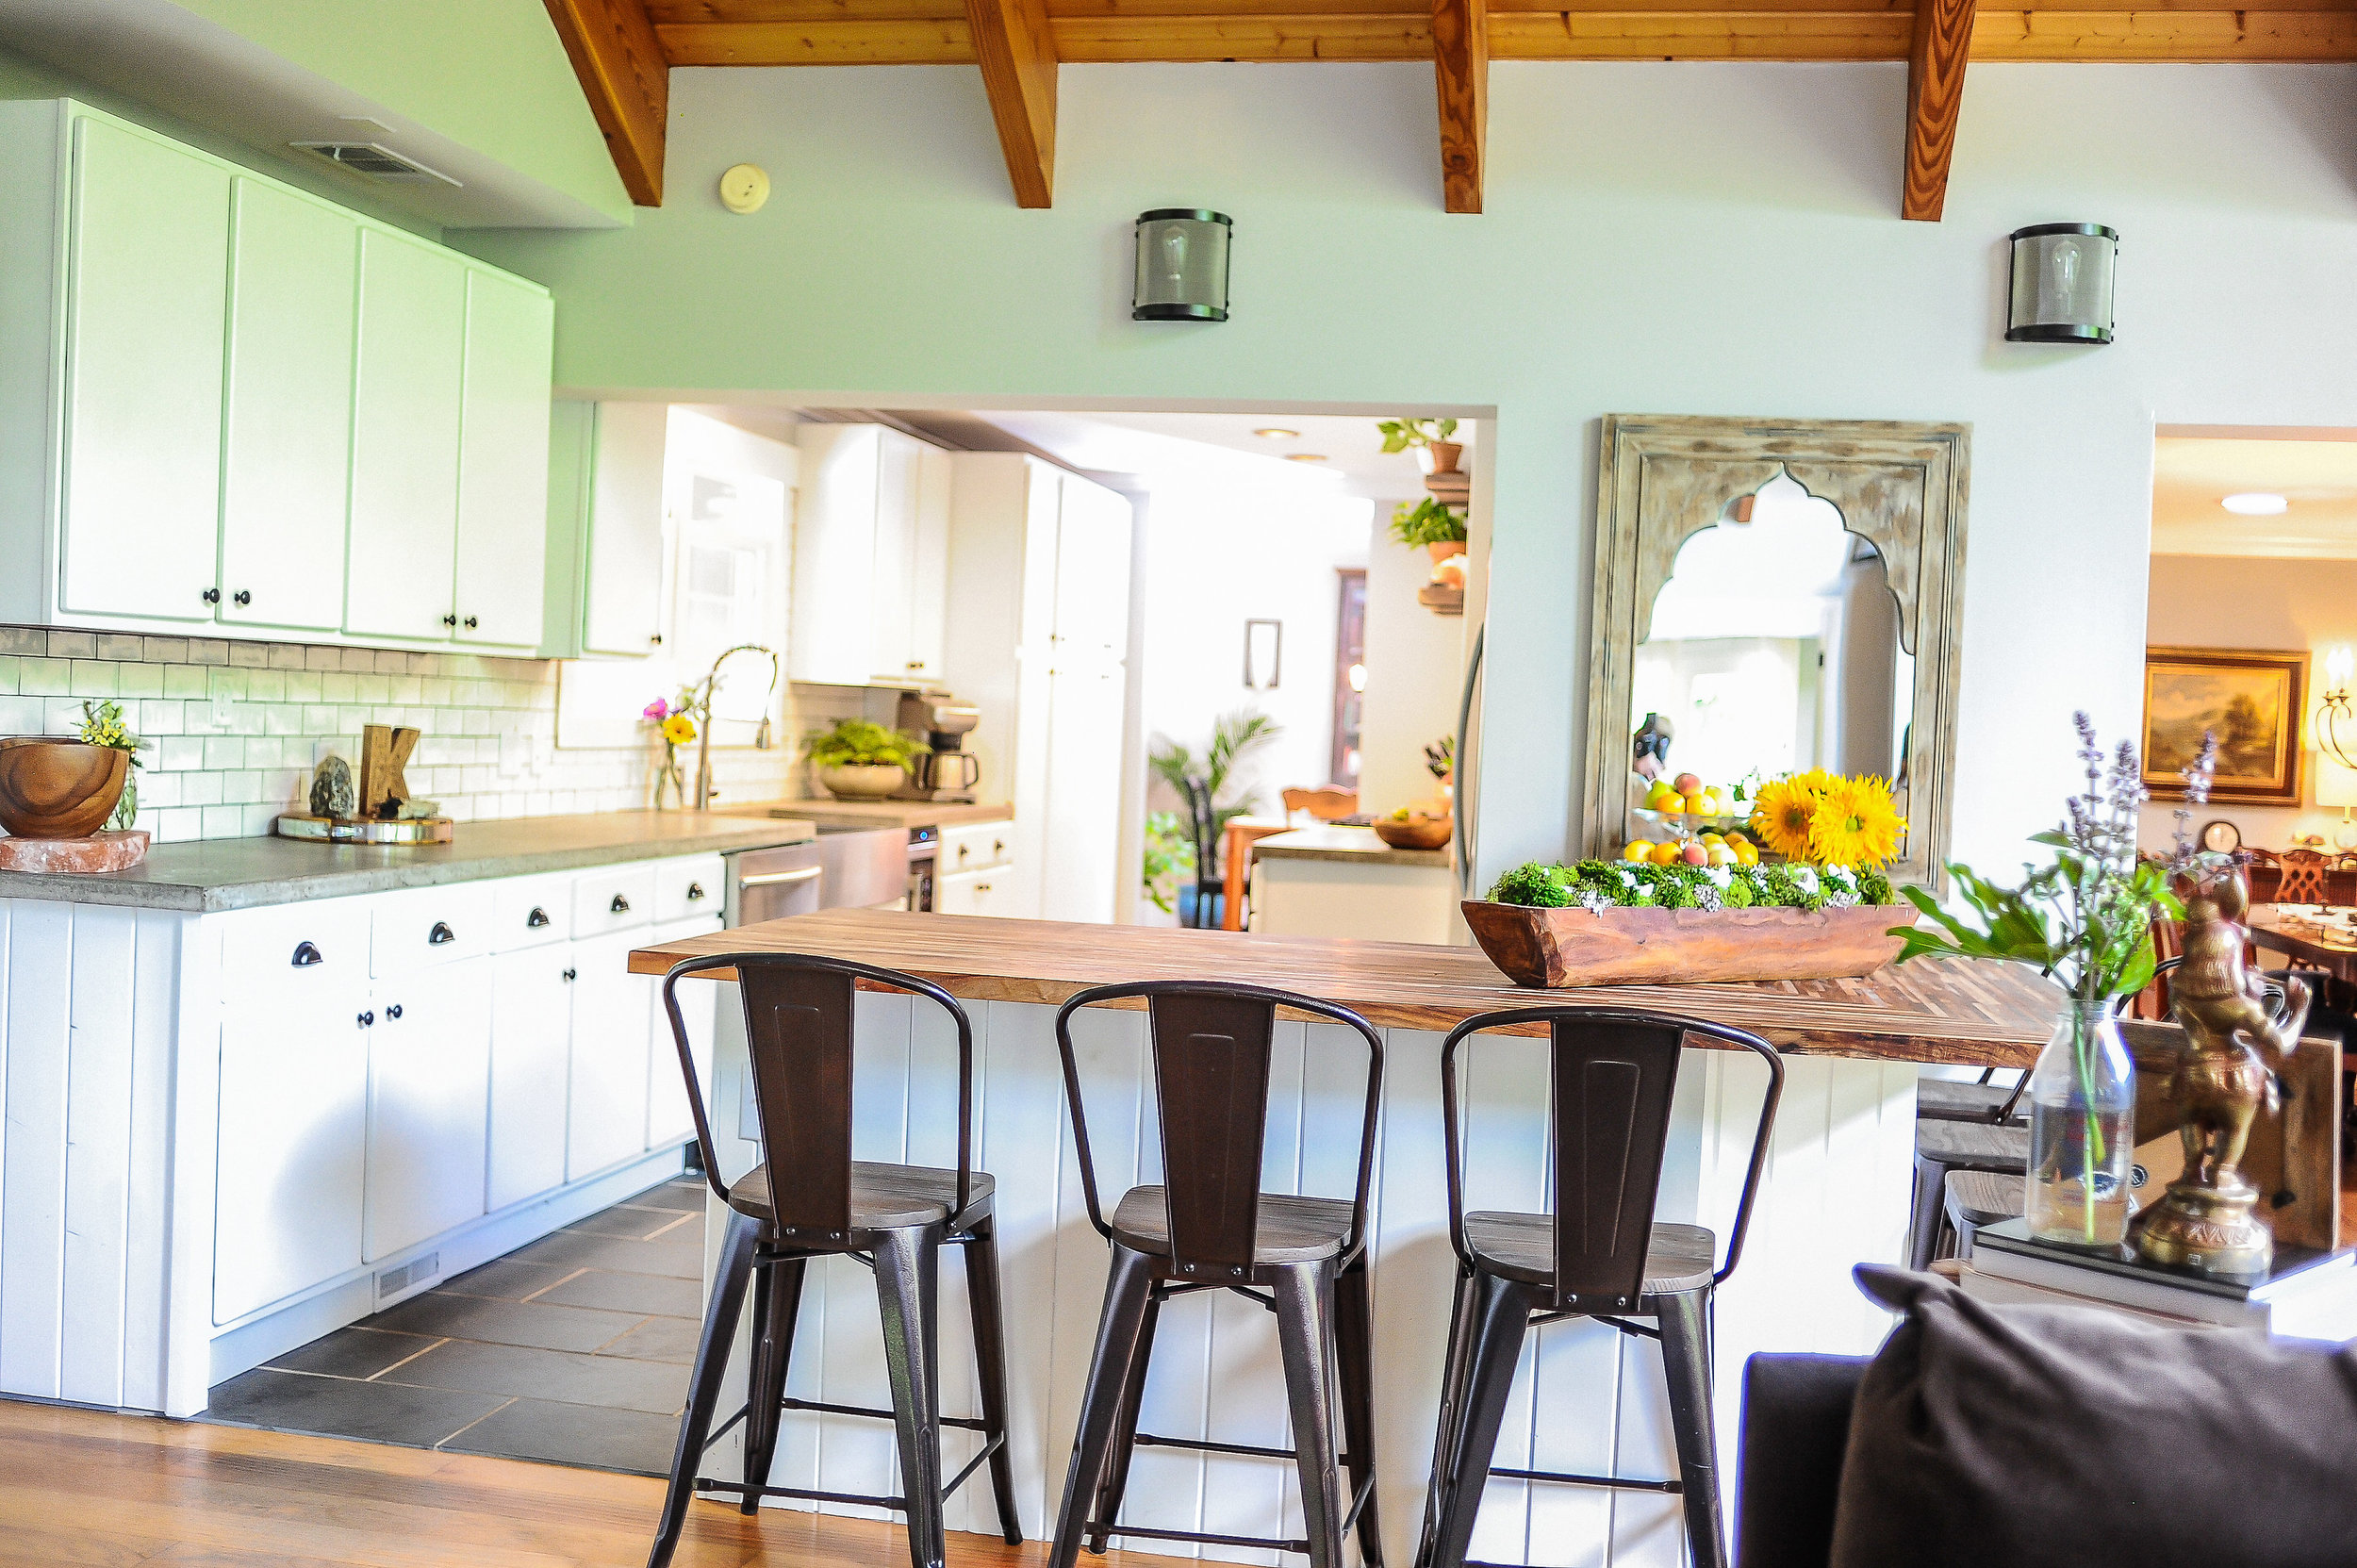 Photo of the kitchen space inside the Farmhouse